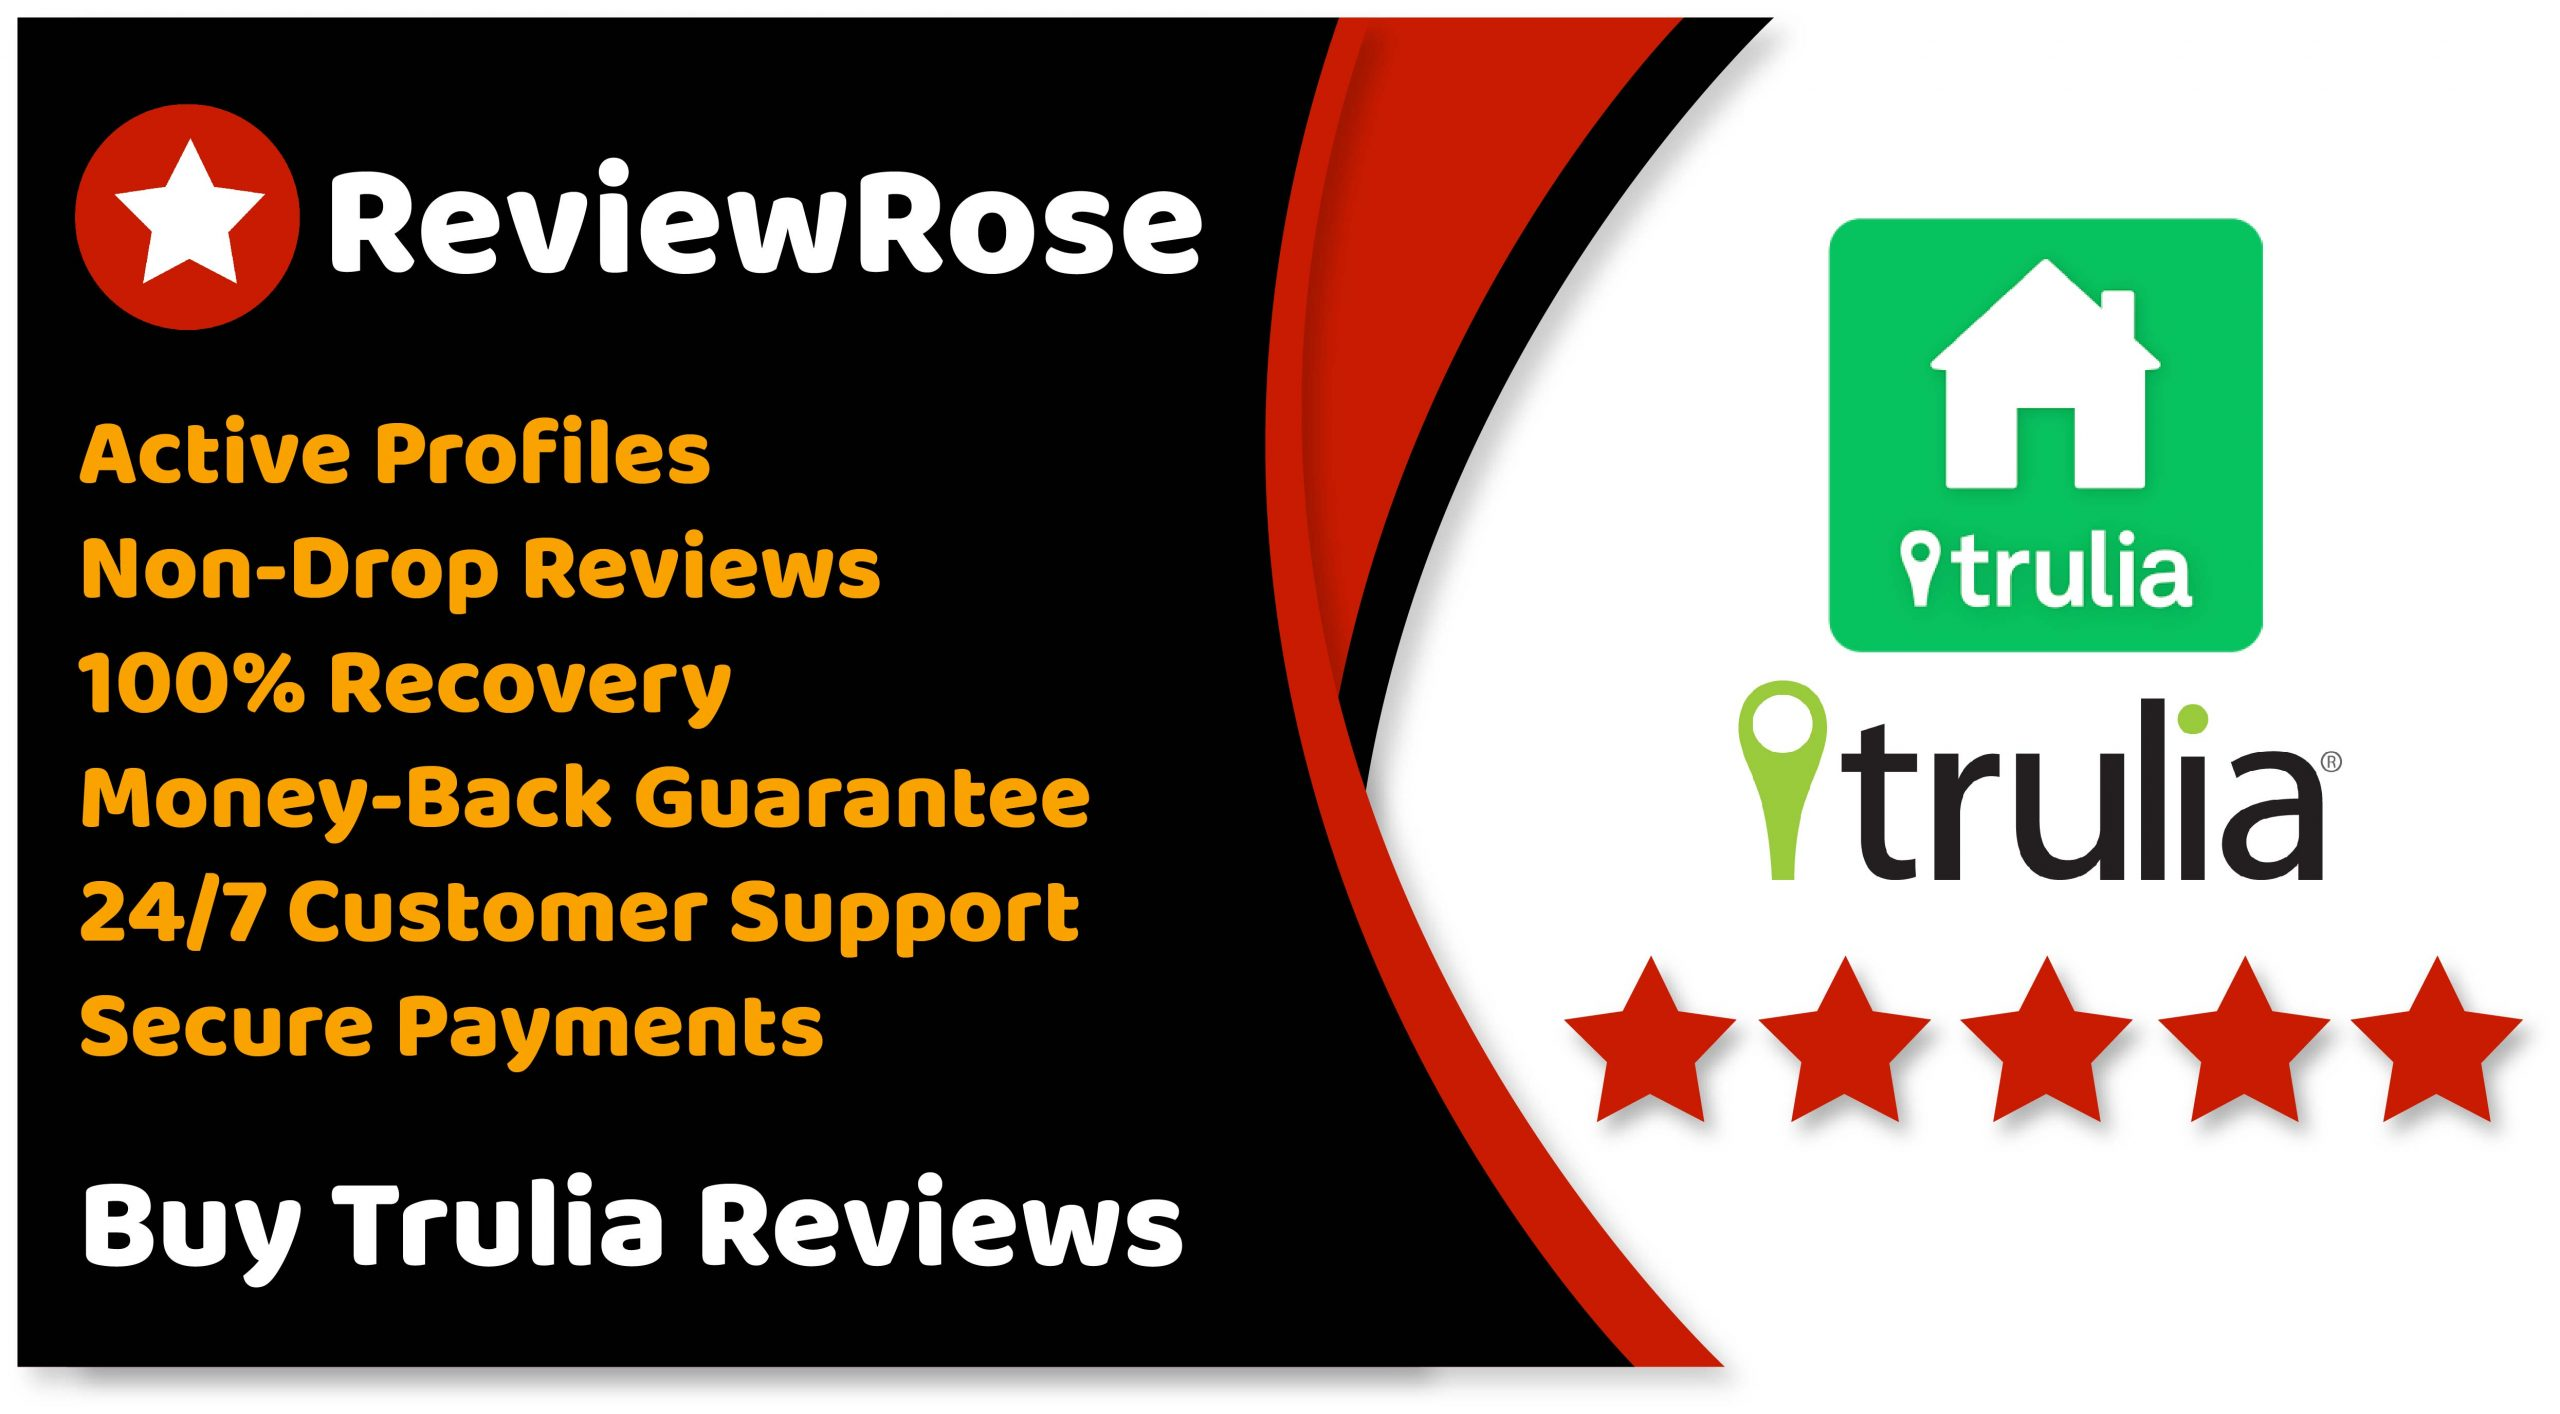 Buy Trulia Reviews